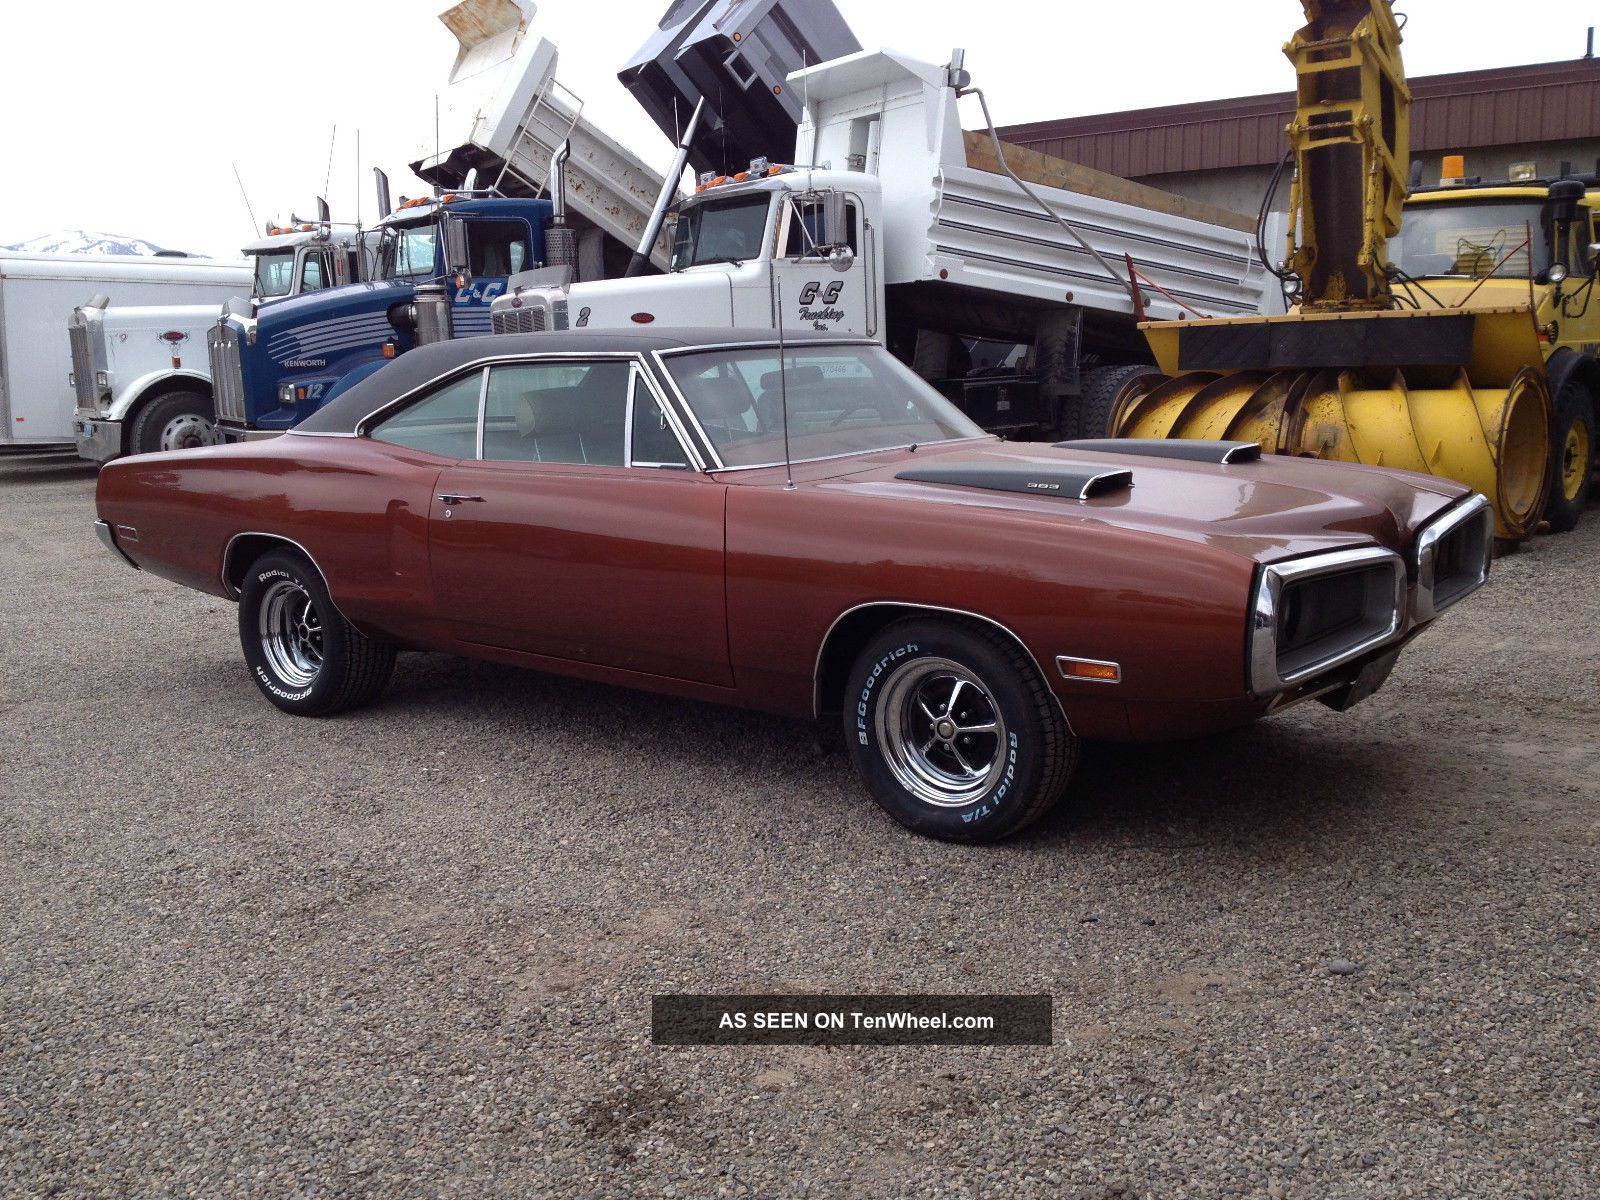 1970 Dodge Coronet 440 Hardtop 2 - Door,  440 Engine,  Clone Coronet photo